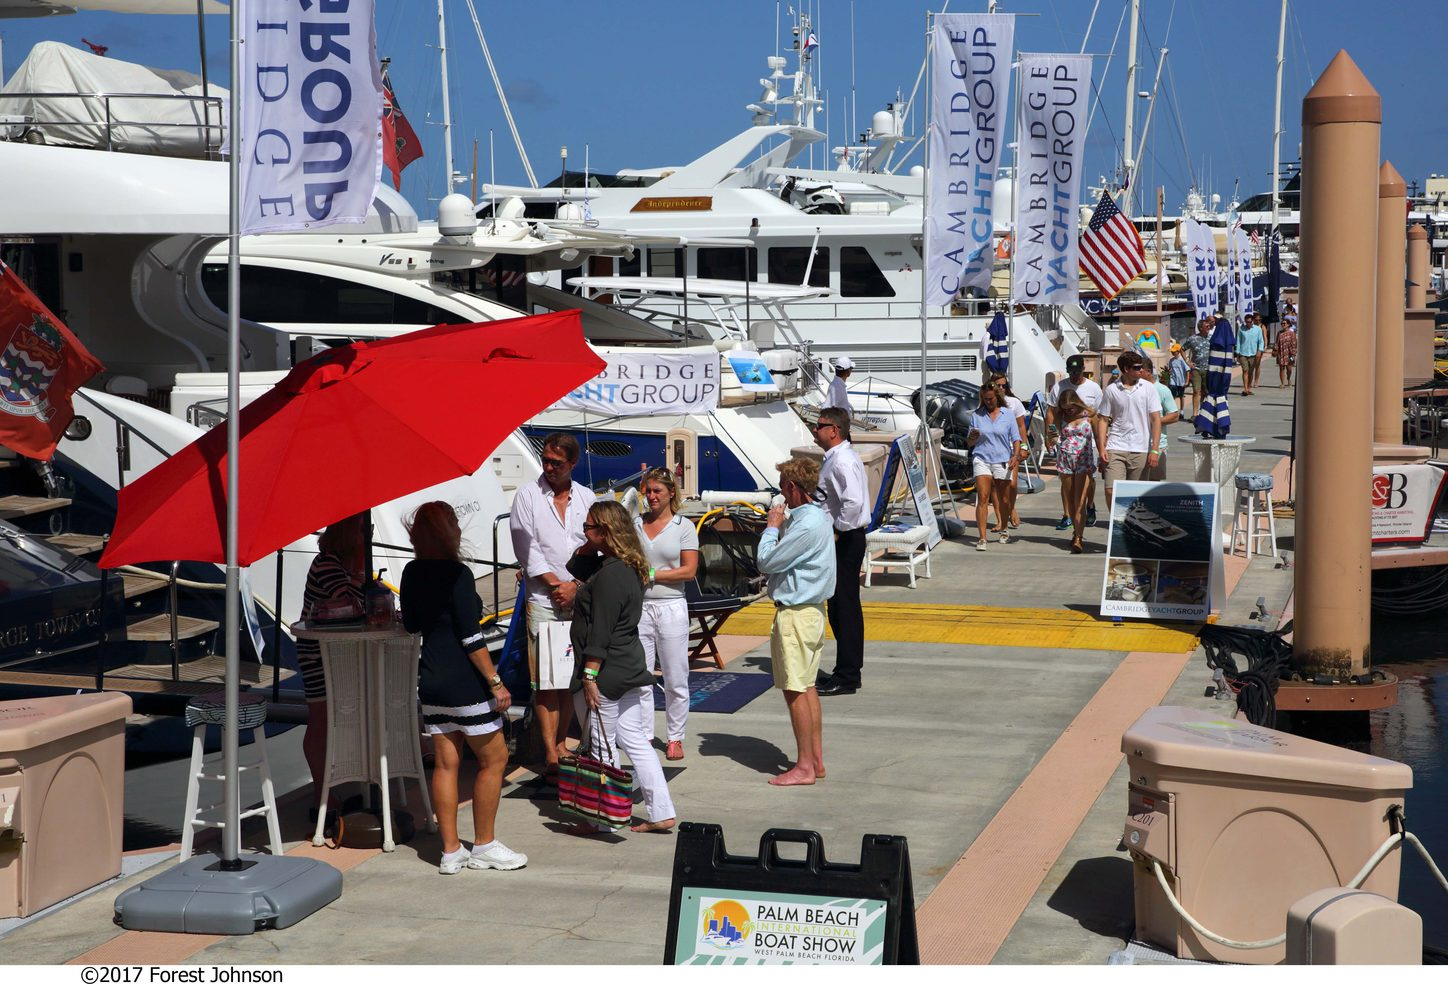 busy boardwalks at the Palm Beach Boat Show